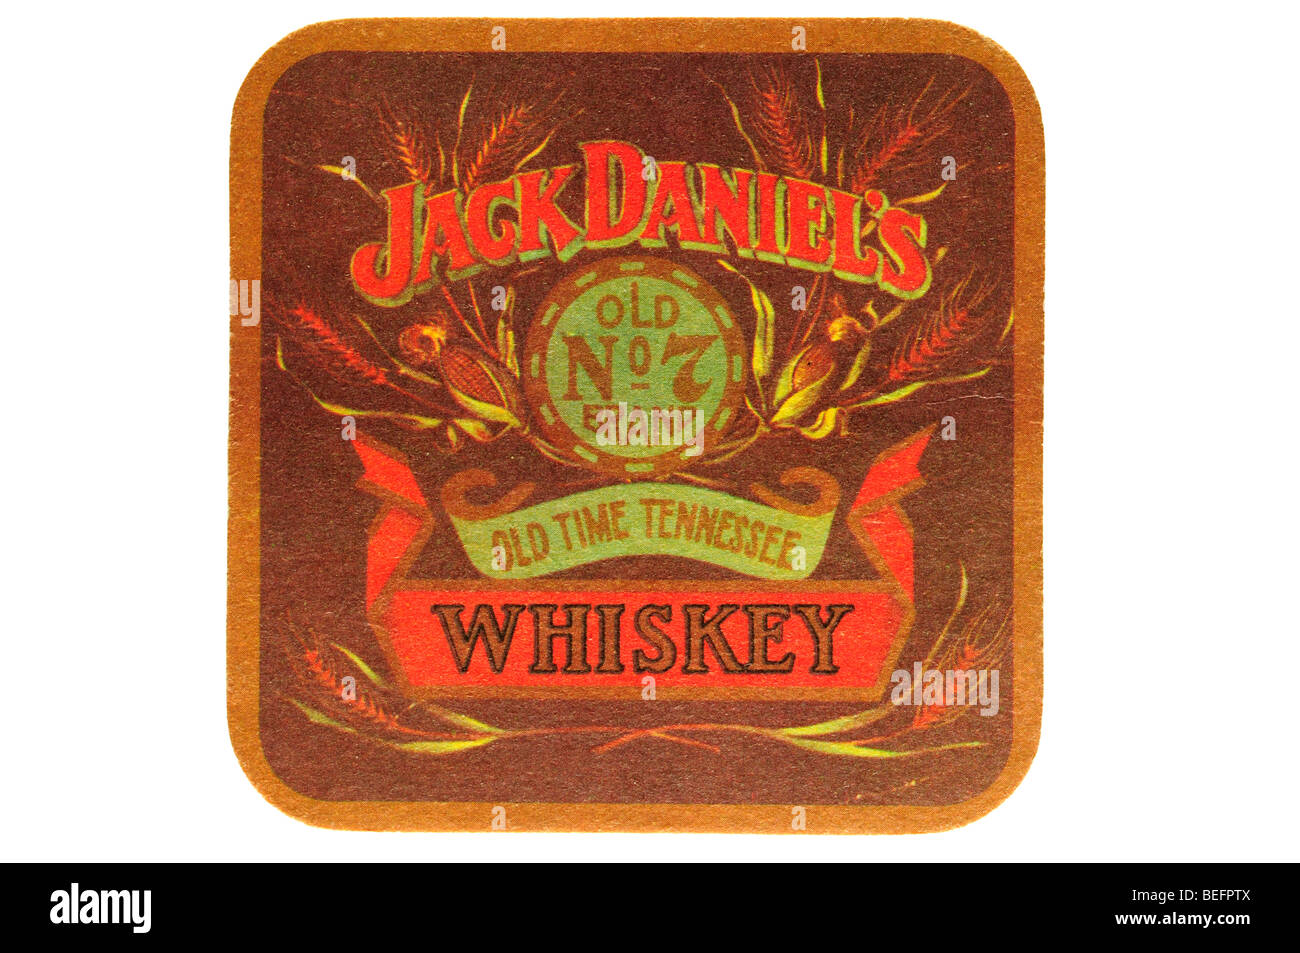 Jack daniels old n°7 brand Tennessee whiskey old time Photo Stock